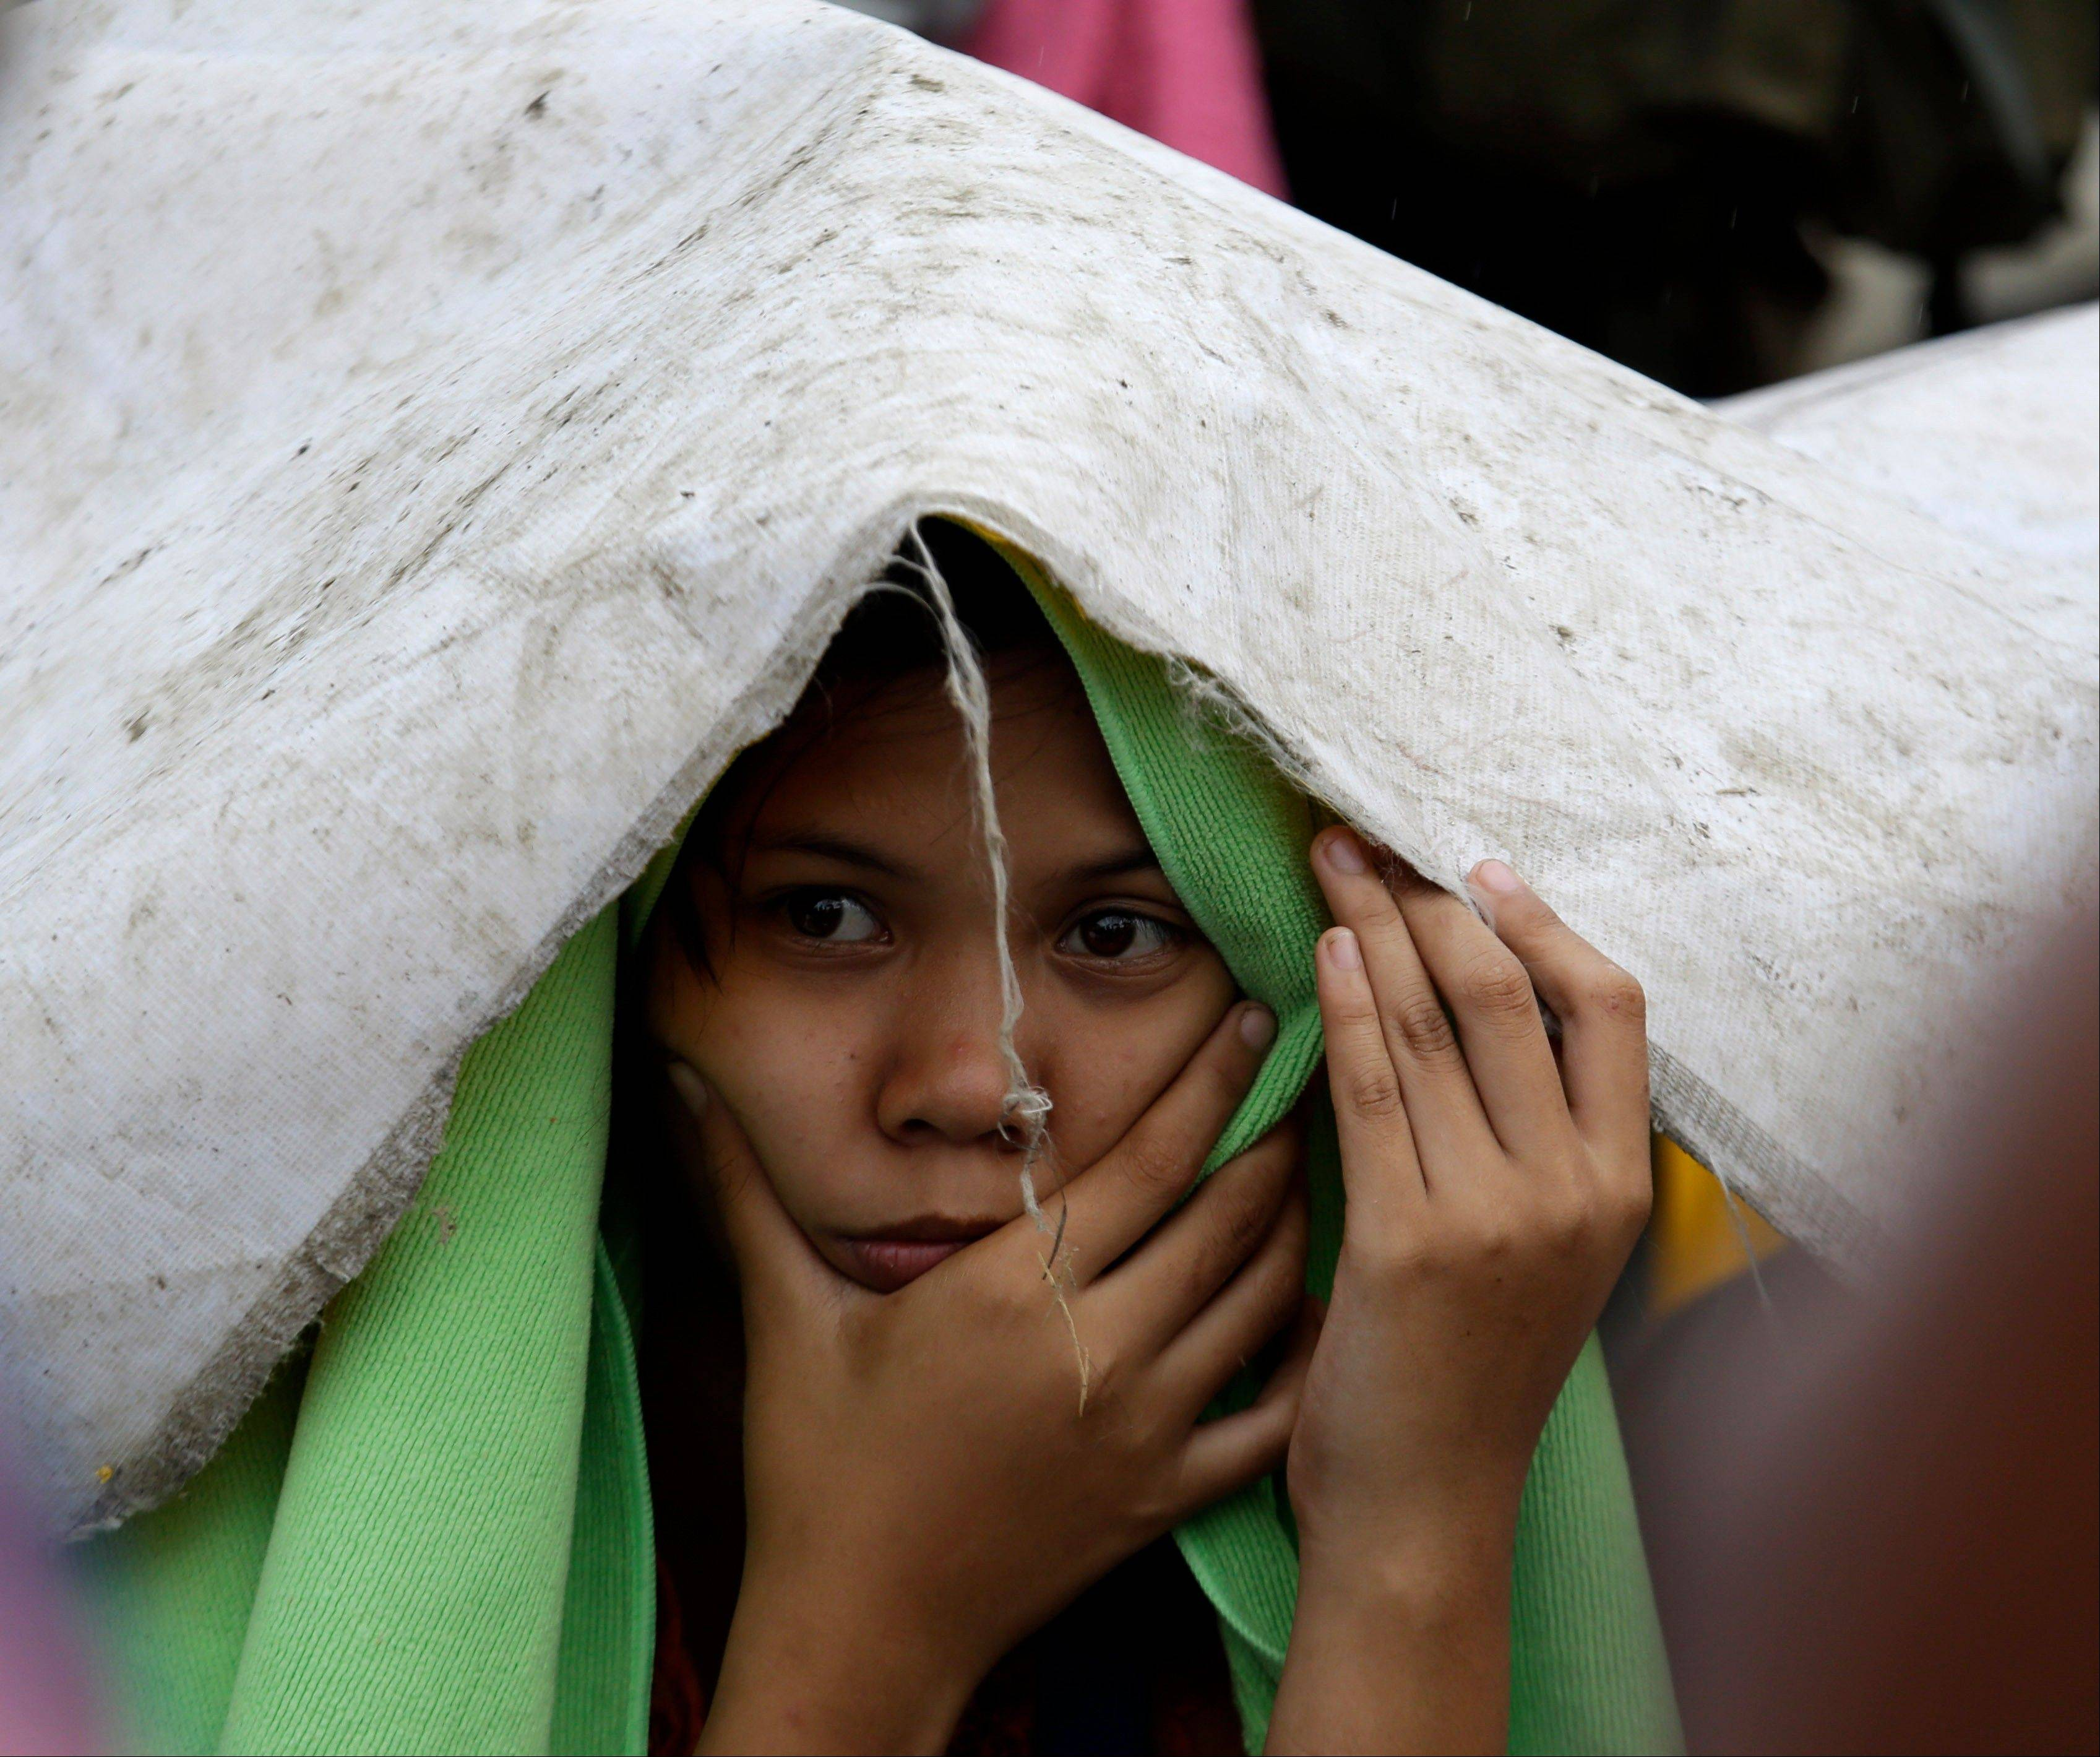 A typhoon survivor waits for a chance to board military transport planes from the U.S., Philippines, Malaysia and Singapore on Sunday at the damaged Tacloban airport, Tacloban city, Leyte province in central Philippines.